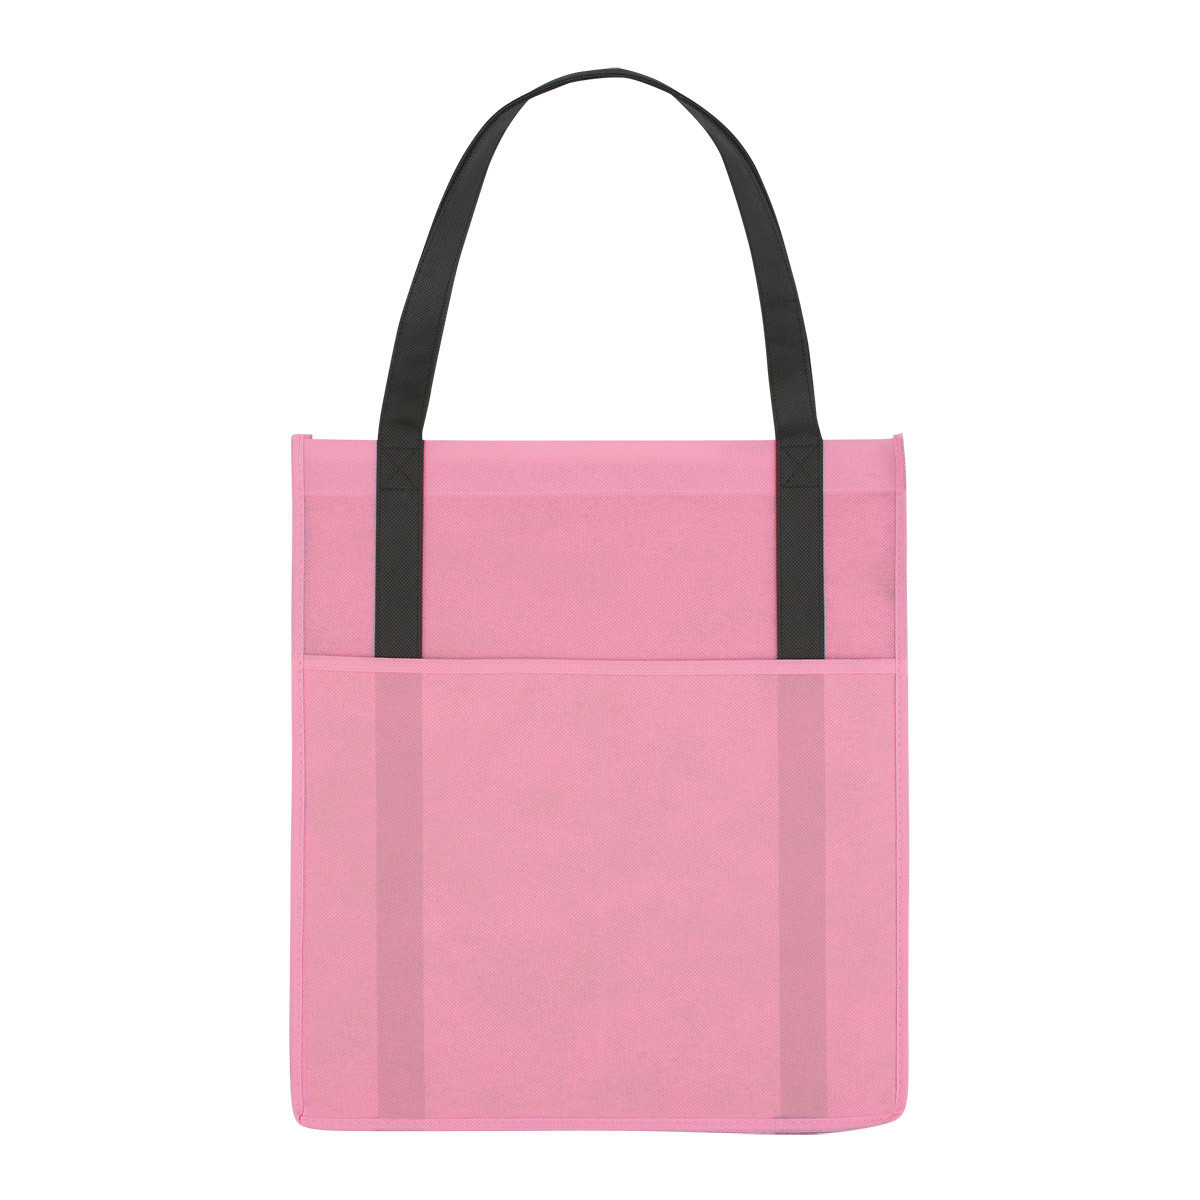 acaa19227d04 2018 china fashion felt custom printed genuine leather women tote bag  wholesale cheap